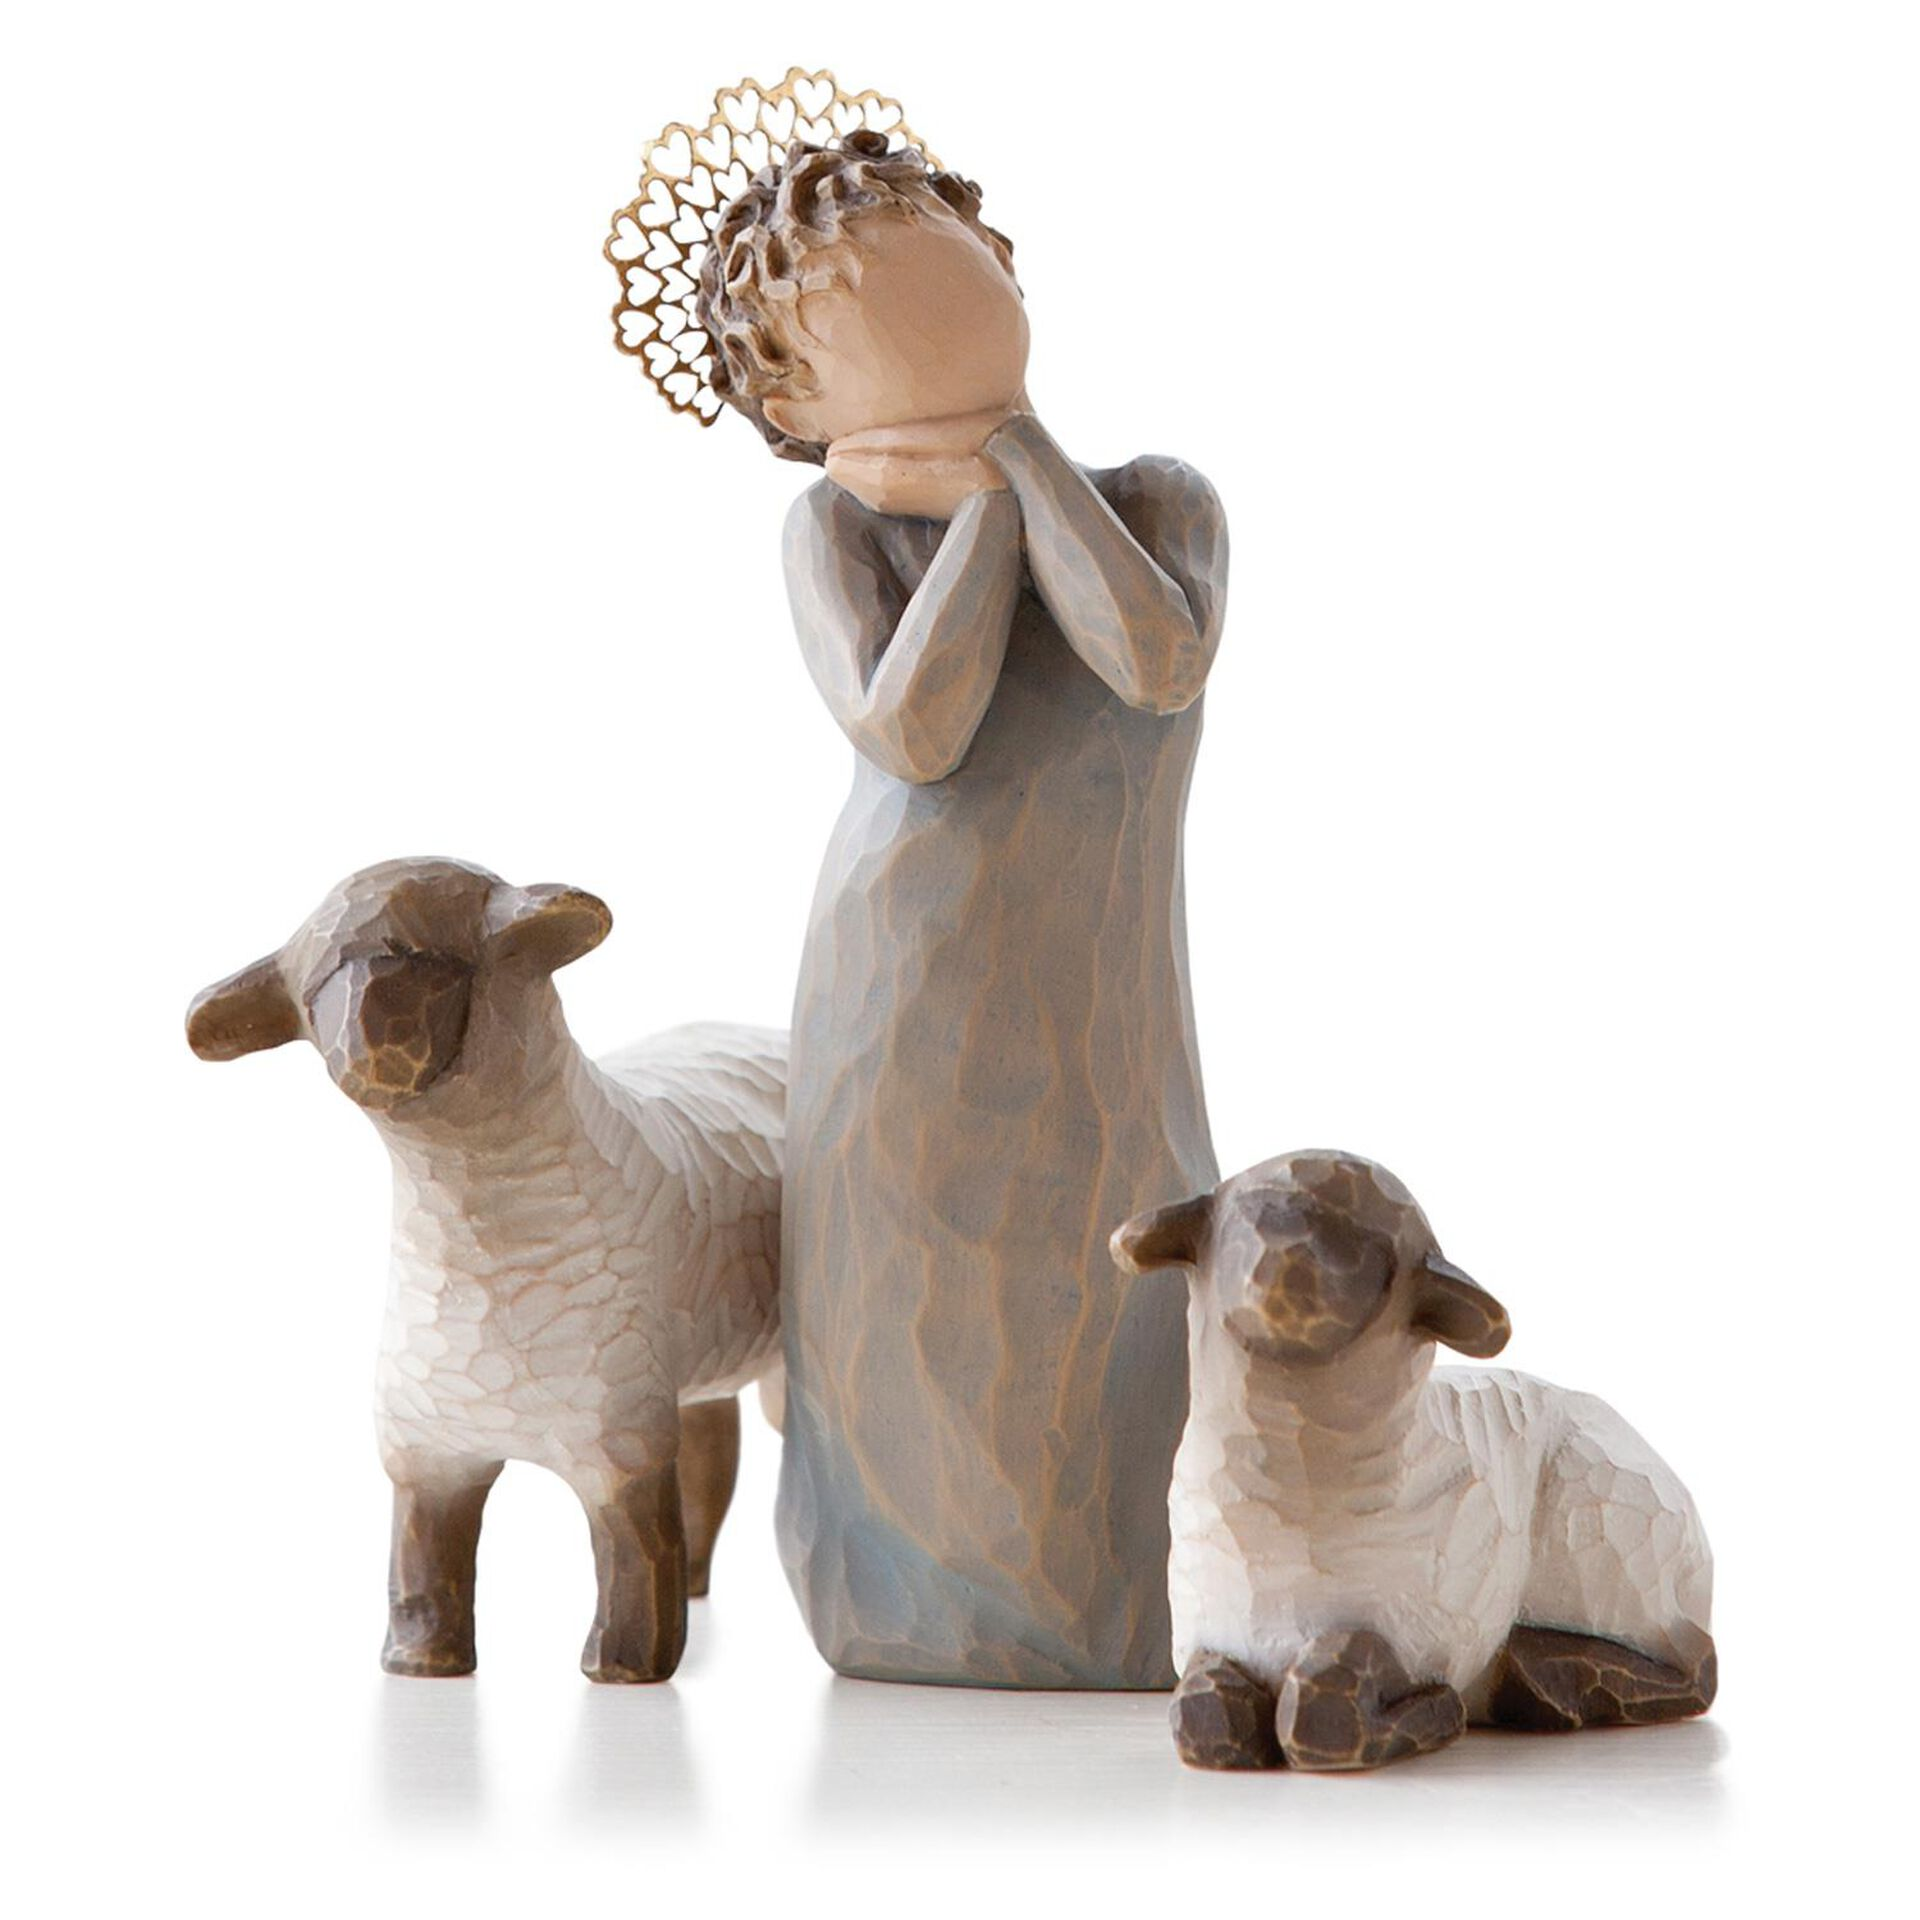 Willow Tree Little Shepherds Nativity Figurines Figurines Hallmark